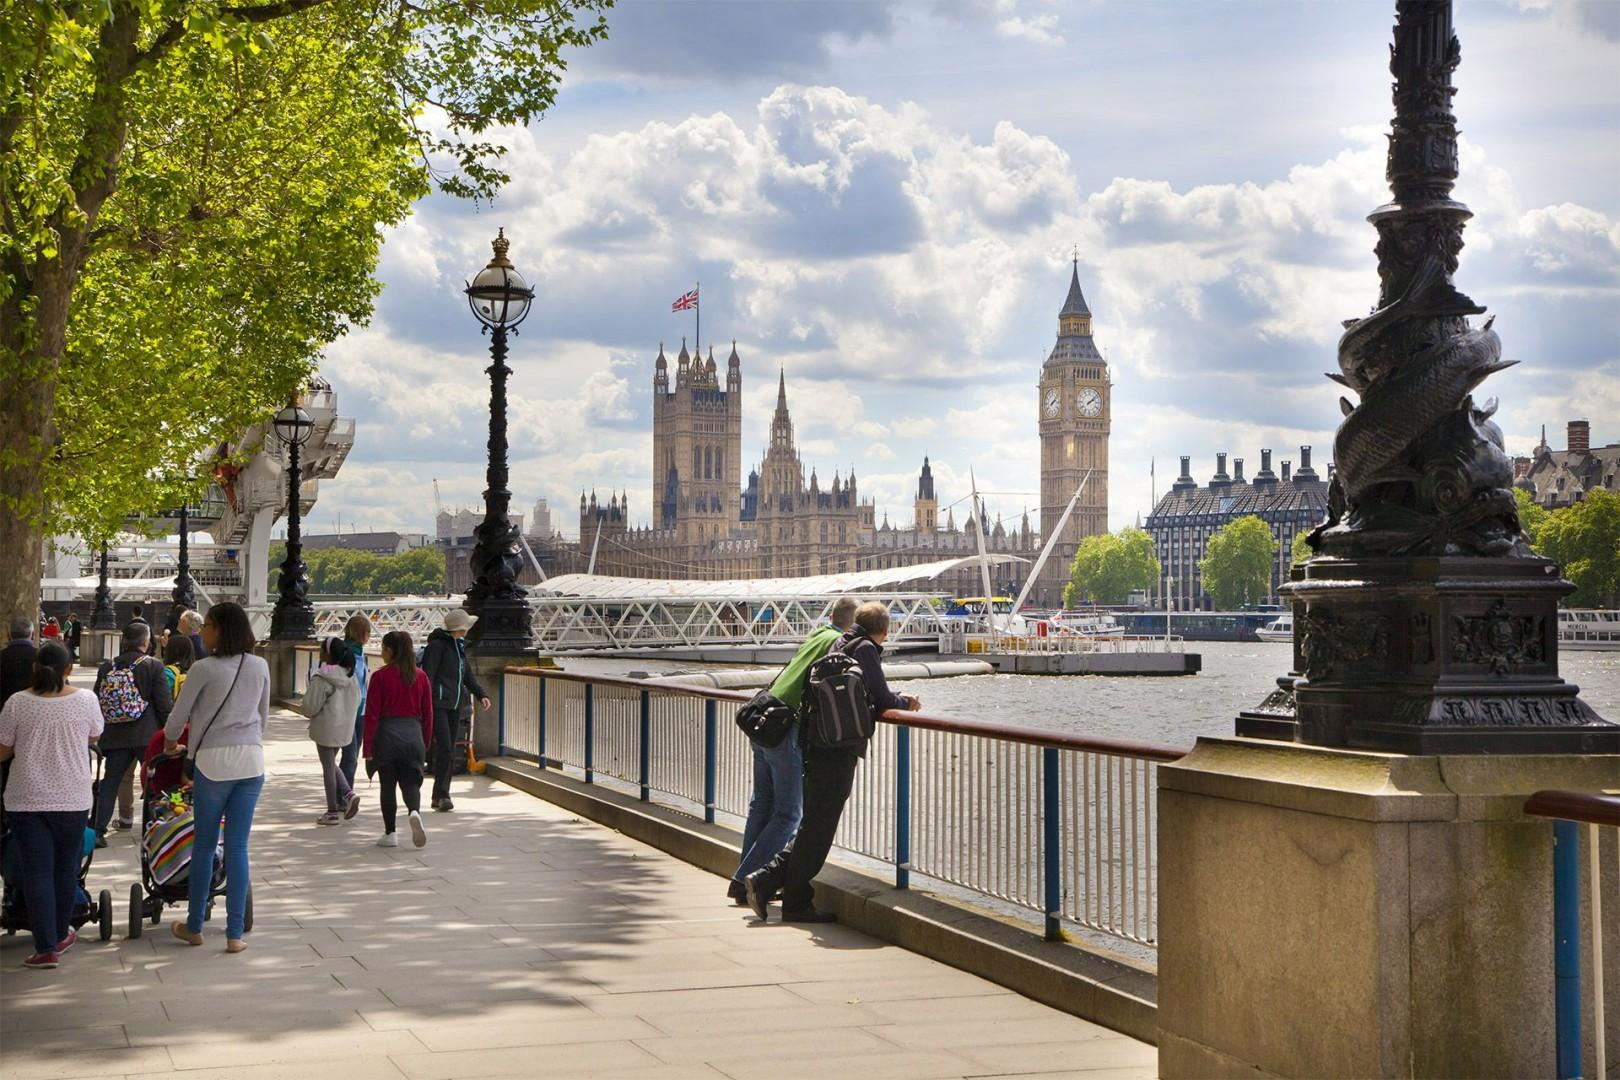 CMS-52-(Stroll along the Thames to see the London sights)-935531894-1508843824-thames-walkway-big-ben-distance